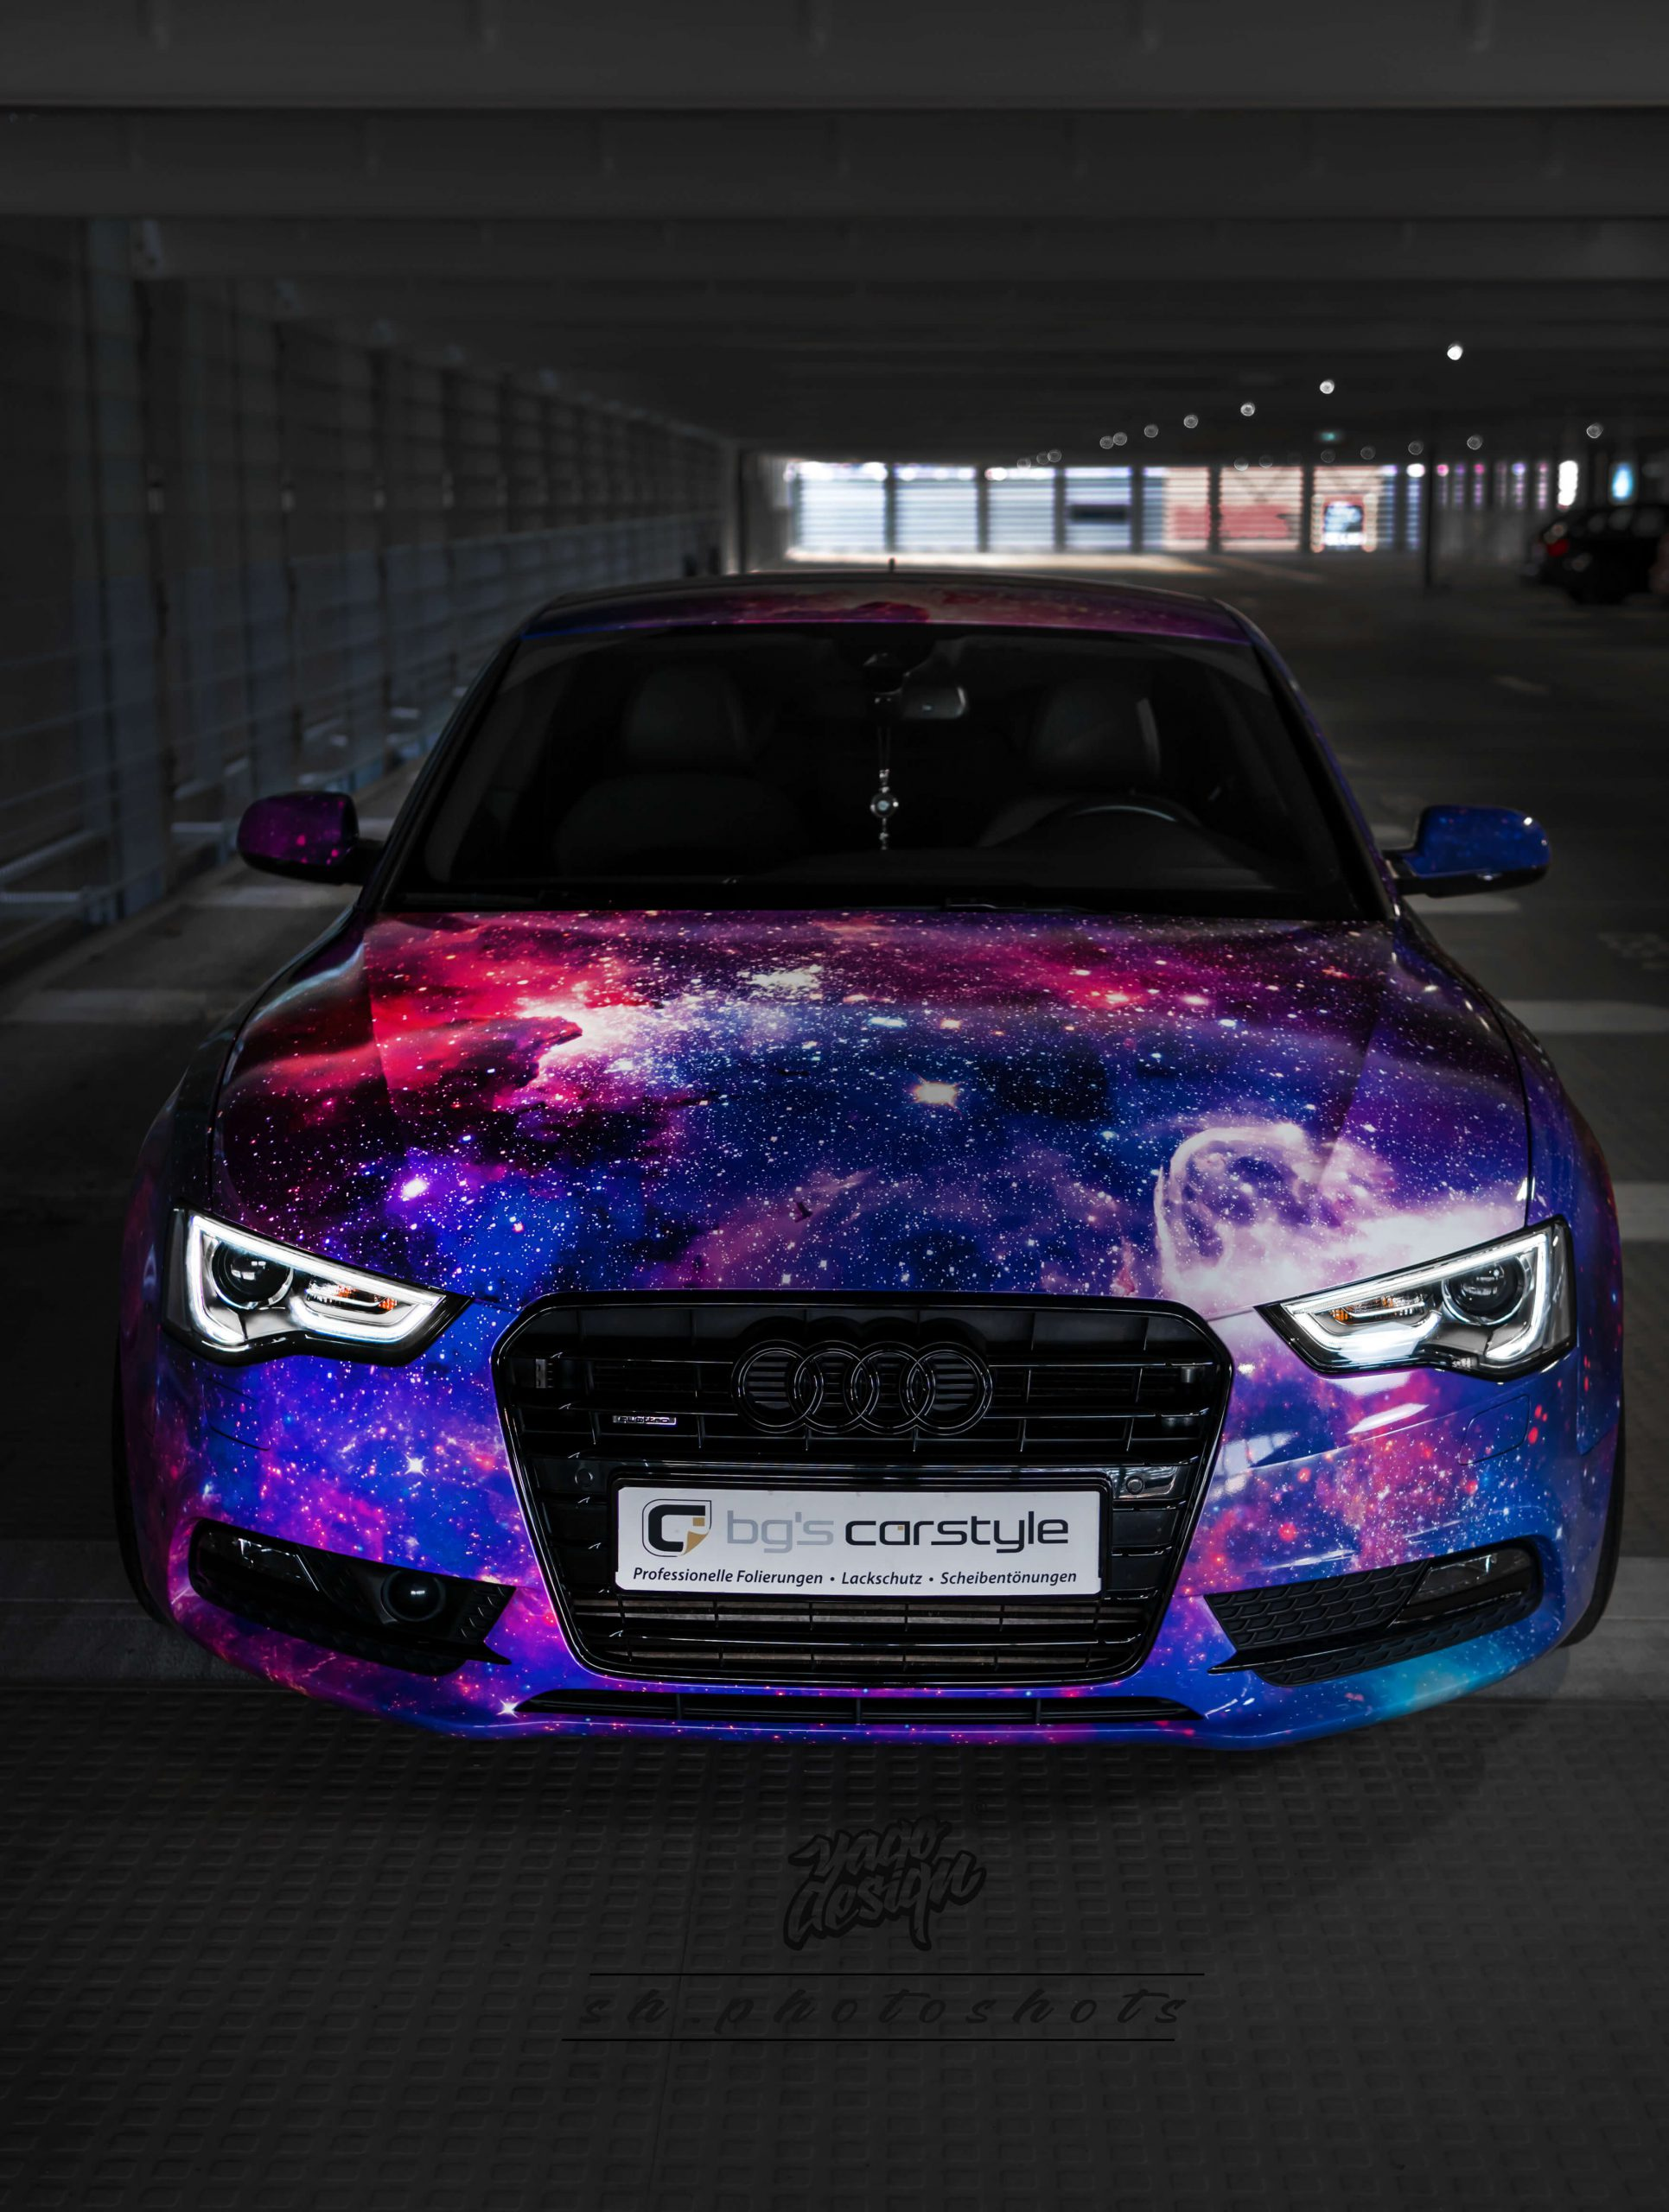 Audi-rs5-by-Yagodesign-2020-wrapped-by-BGscarstyle-scaled